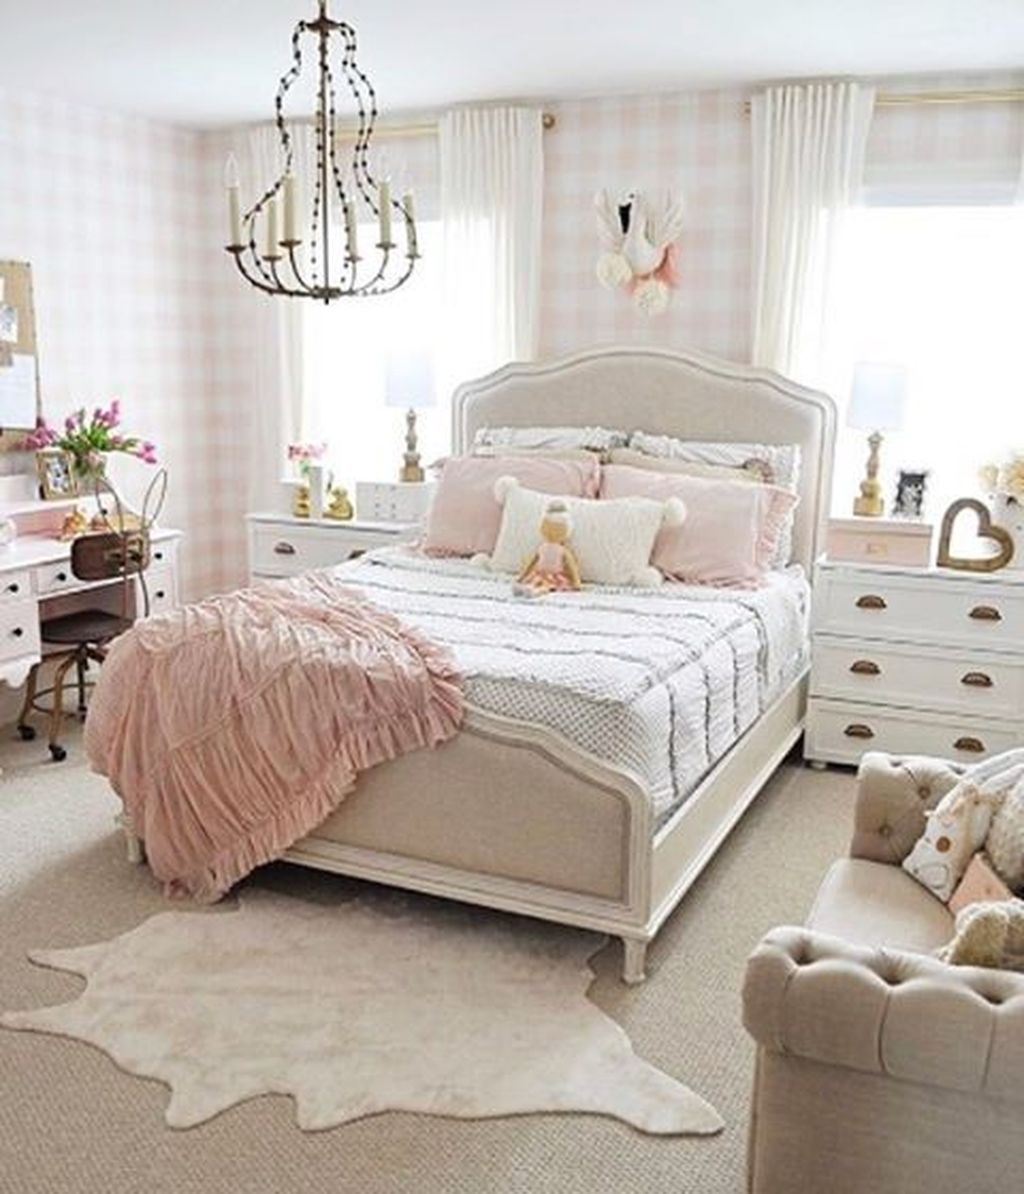 34 Stunning Stylish French Country Bedroom Design Ideas Home